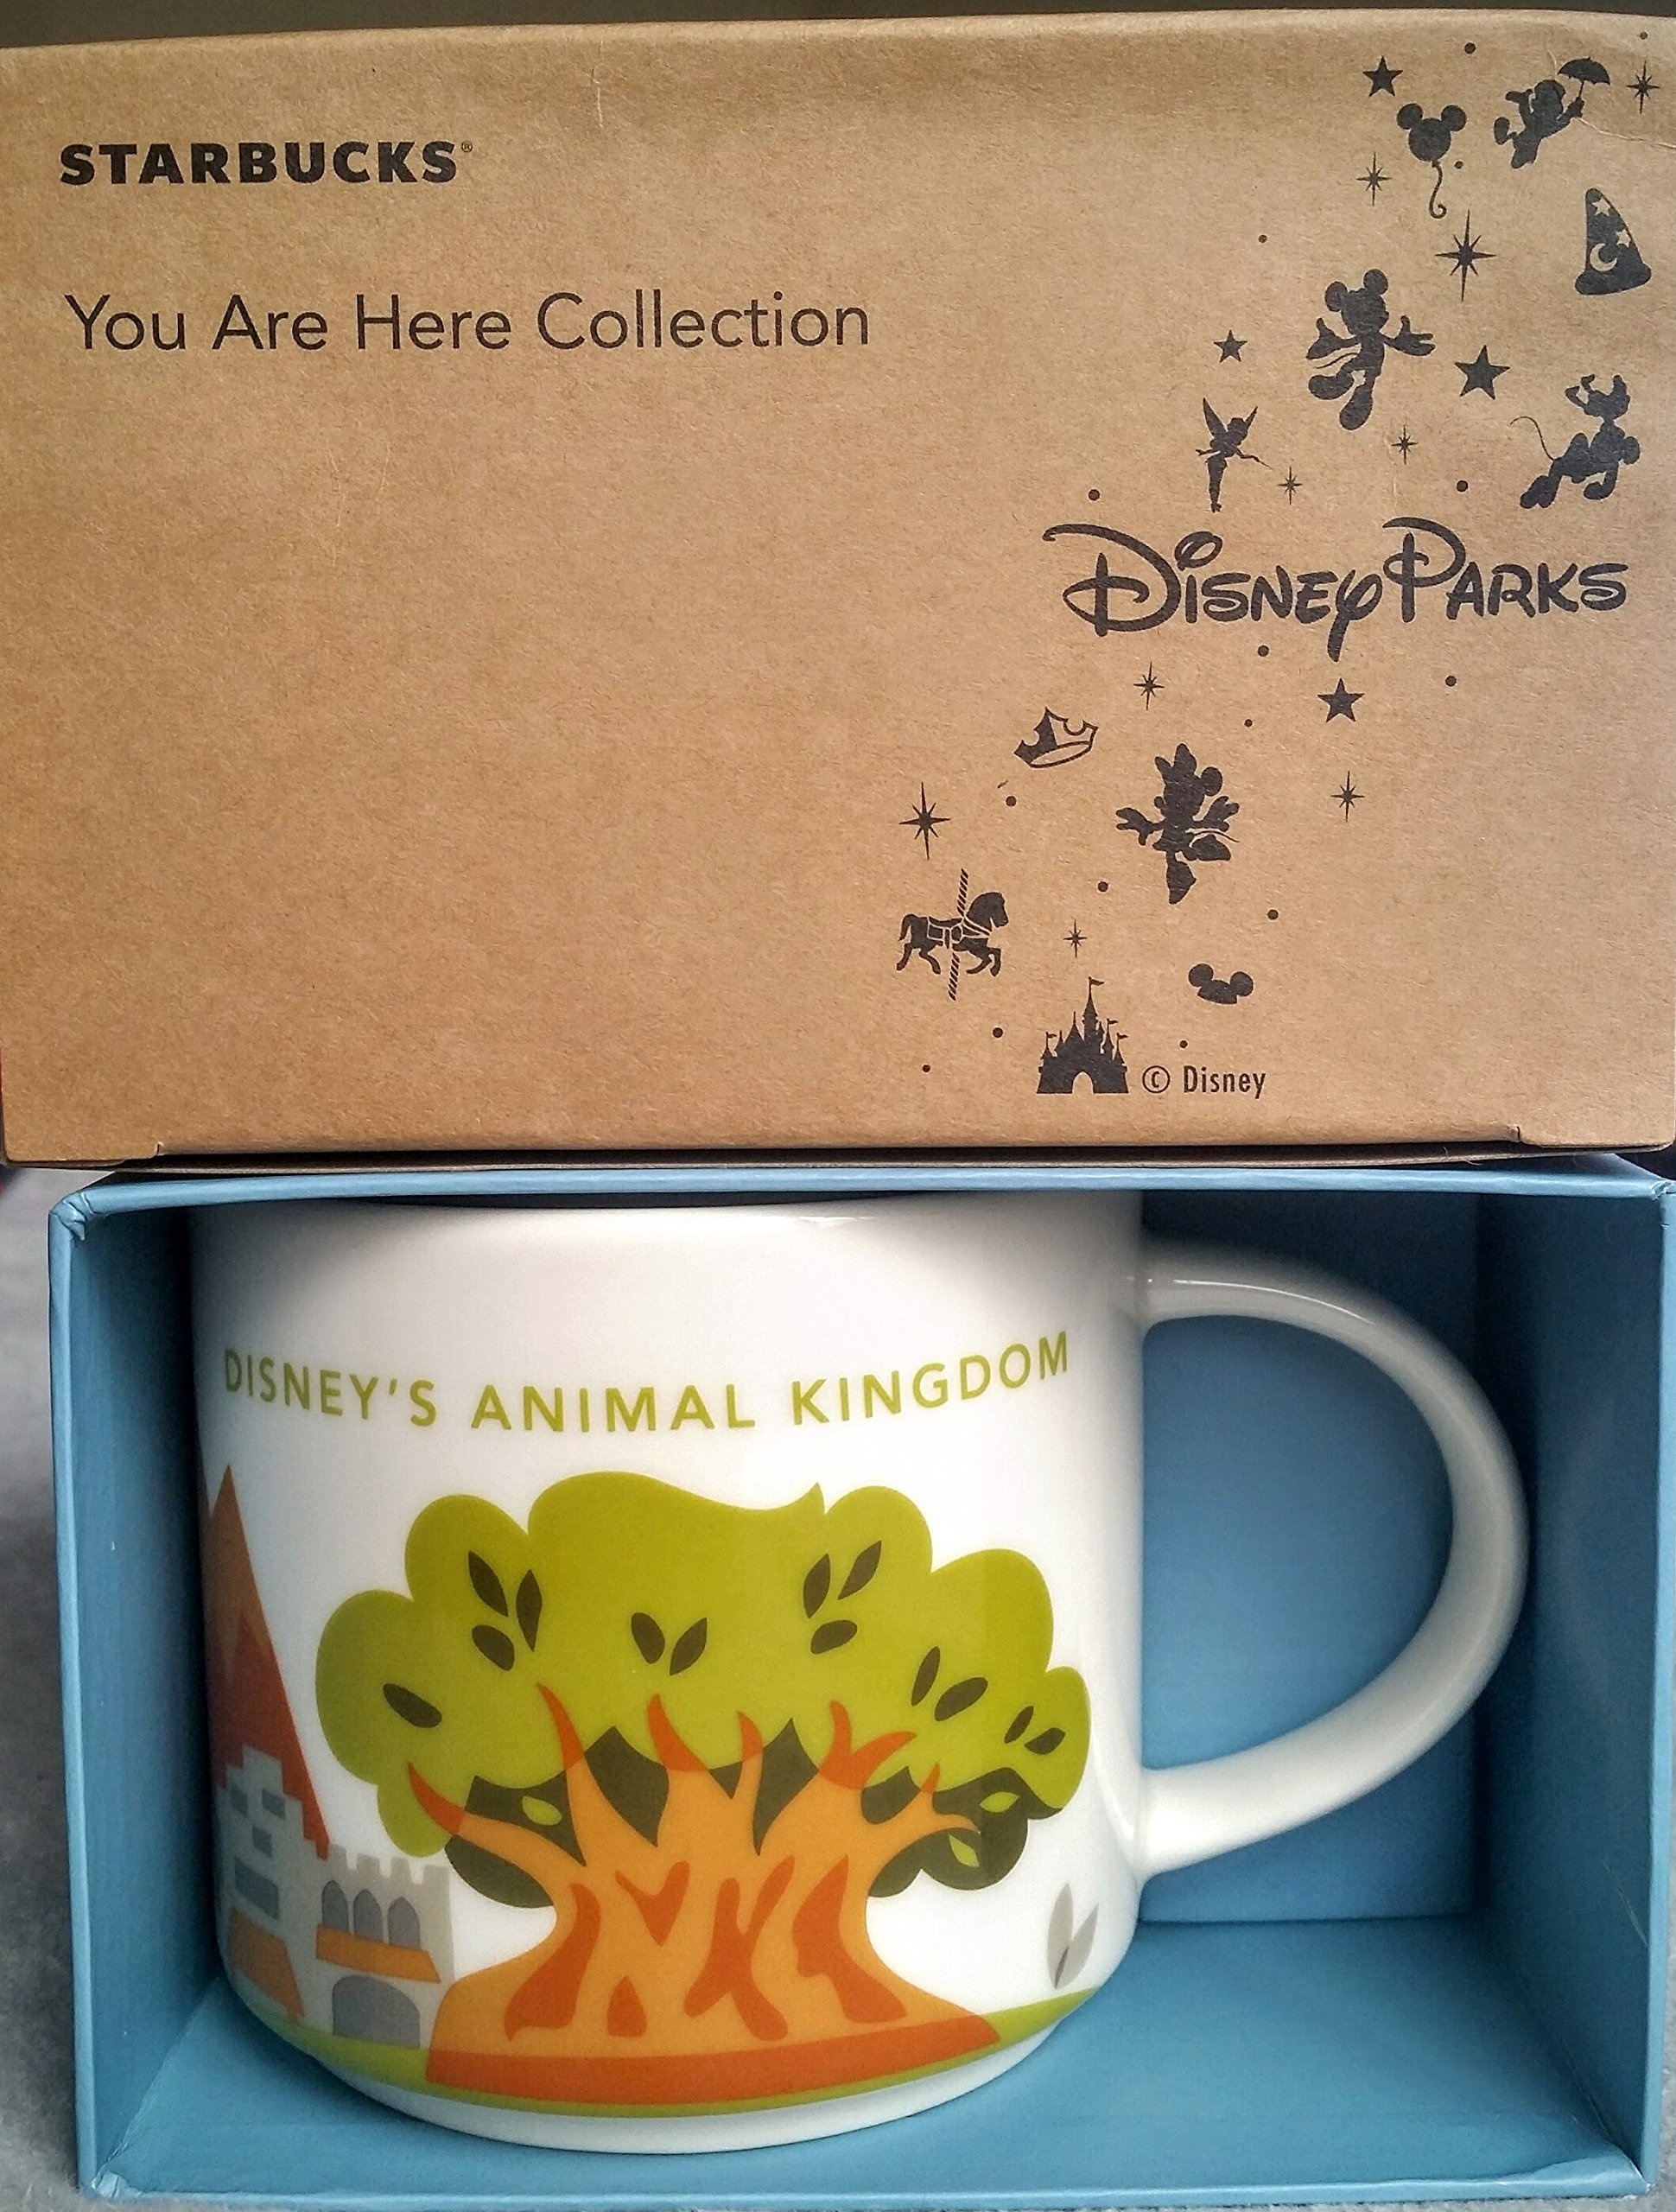 Disney World Starbucks Animal Kingdom You Are Here Coffee Mug by Disney (Image #1)